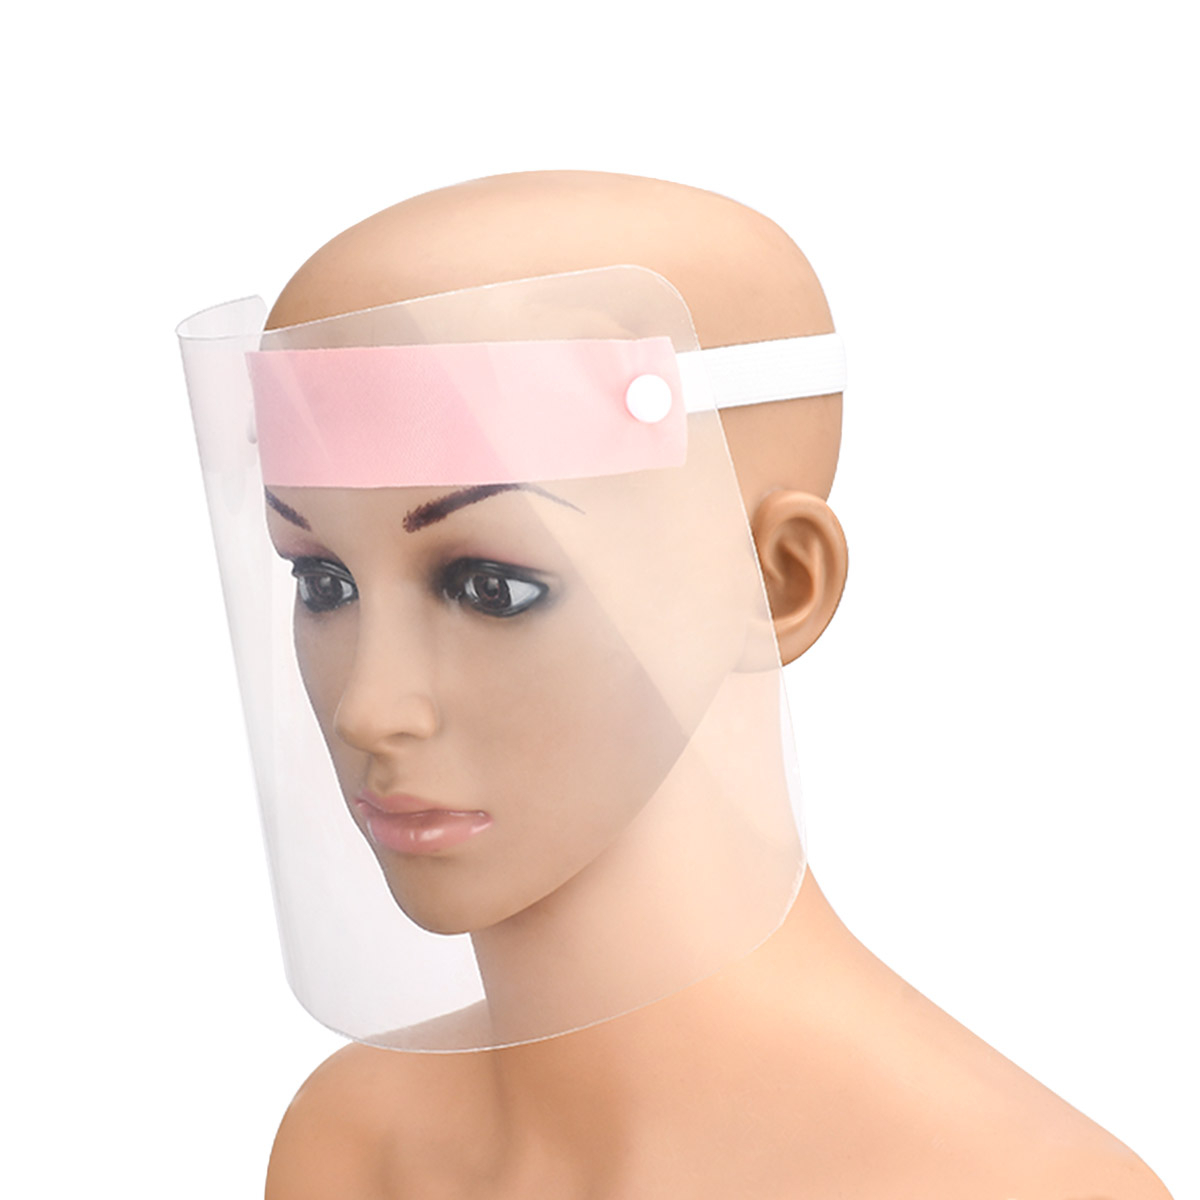 Transparent Face Protective Shield Tool Set Dust-proof Protect Full Face Care Covering Visor Shield Cover